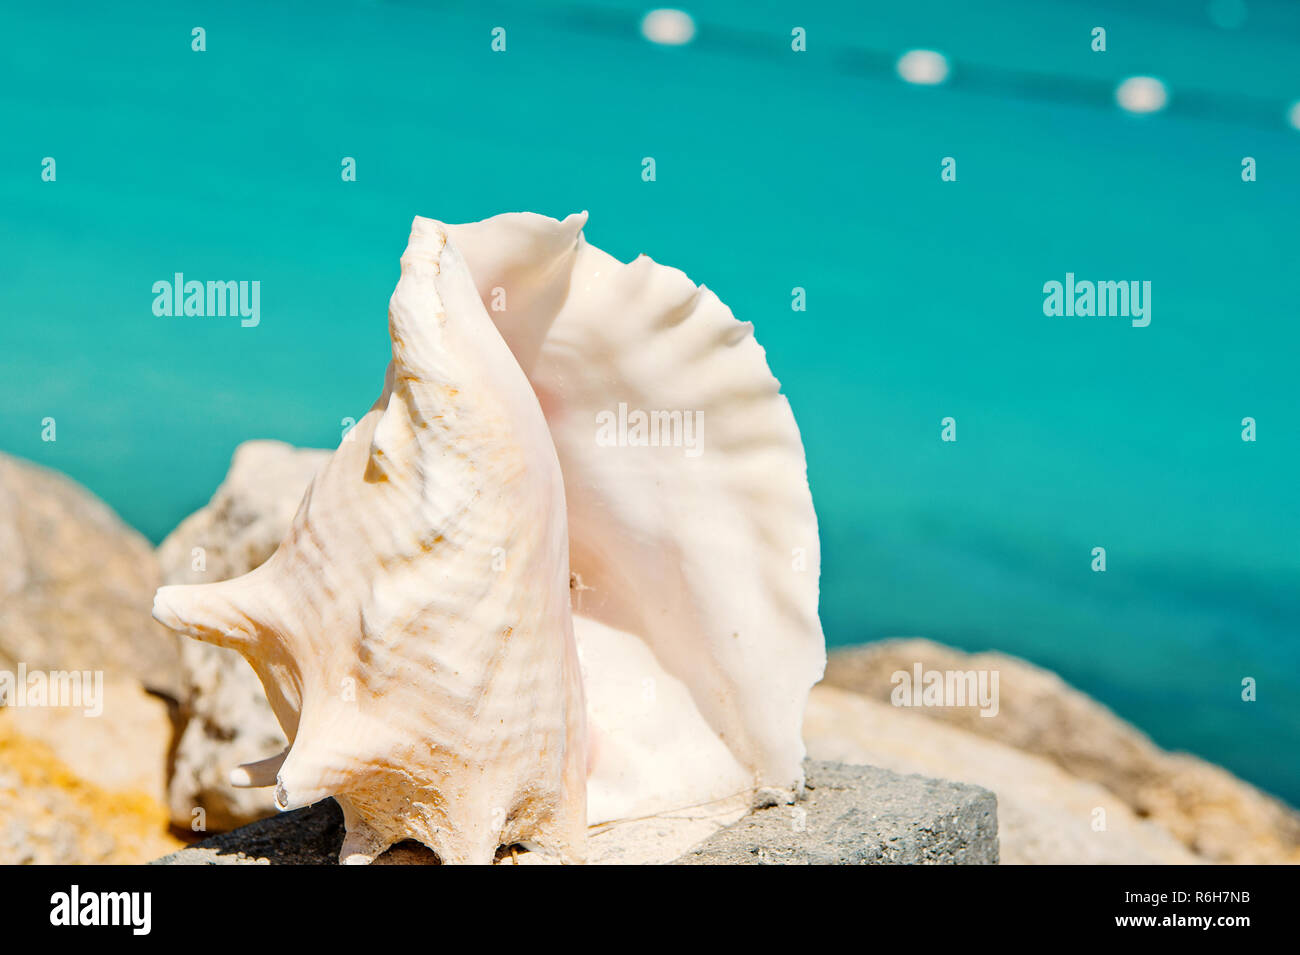 beautiful ocean, sea shell, seashell or cockleshell white color sunny summer outdoor on blurred background, travelling and vacation, souvenir - Stock Image